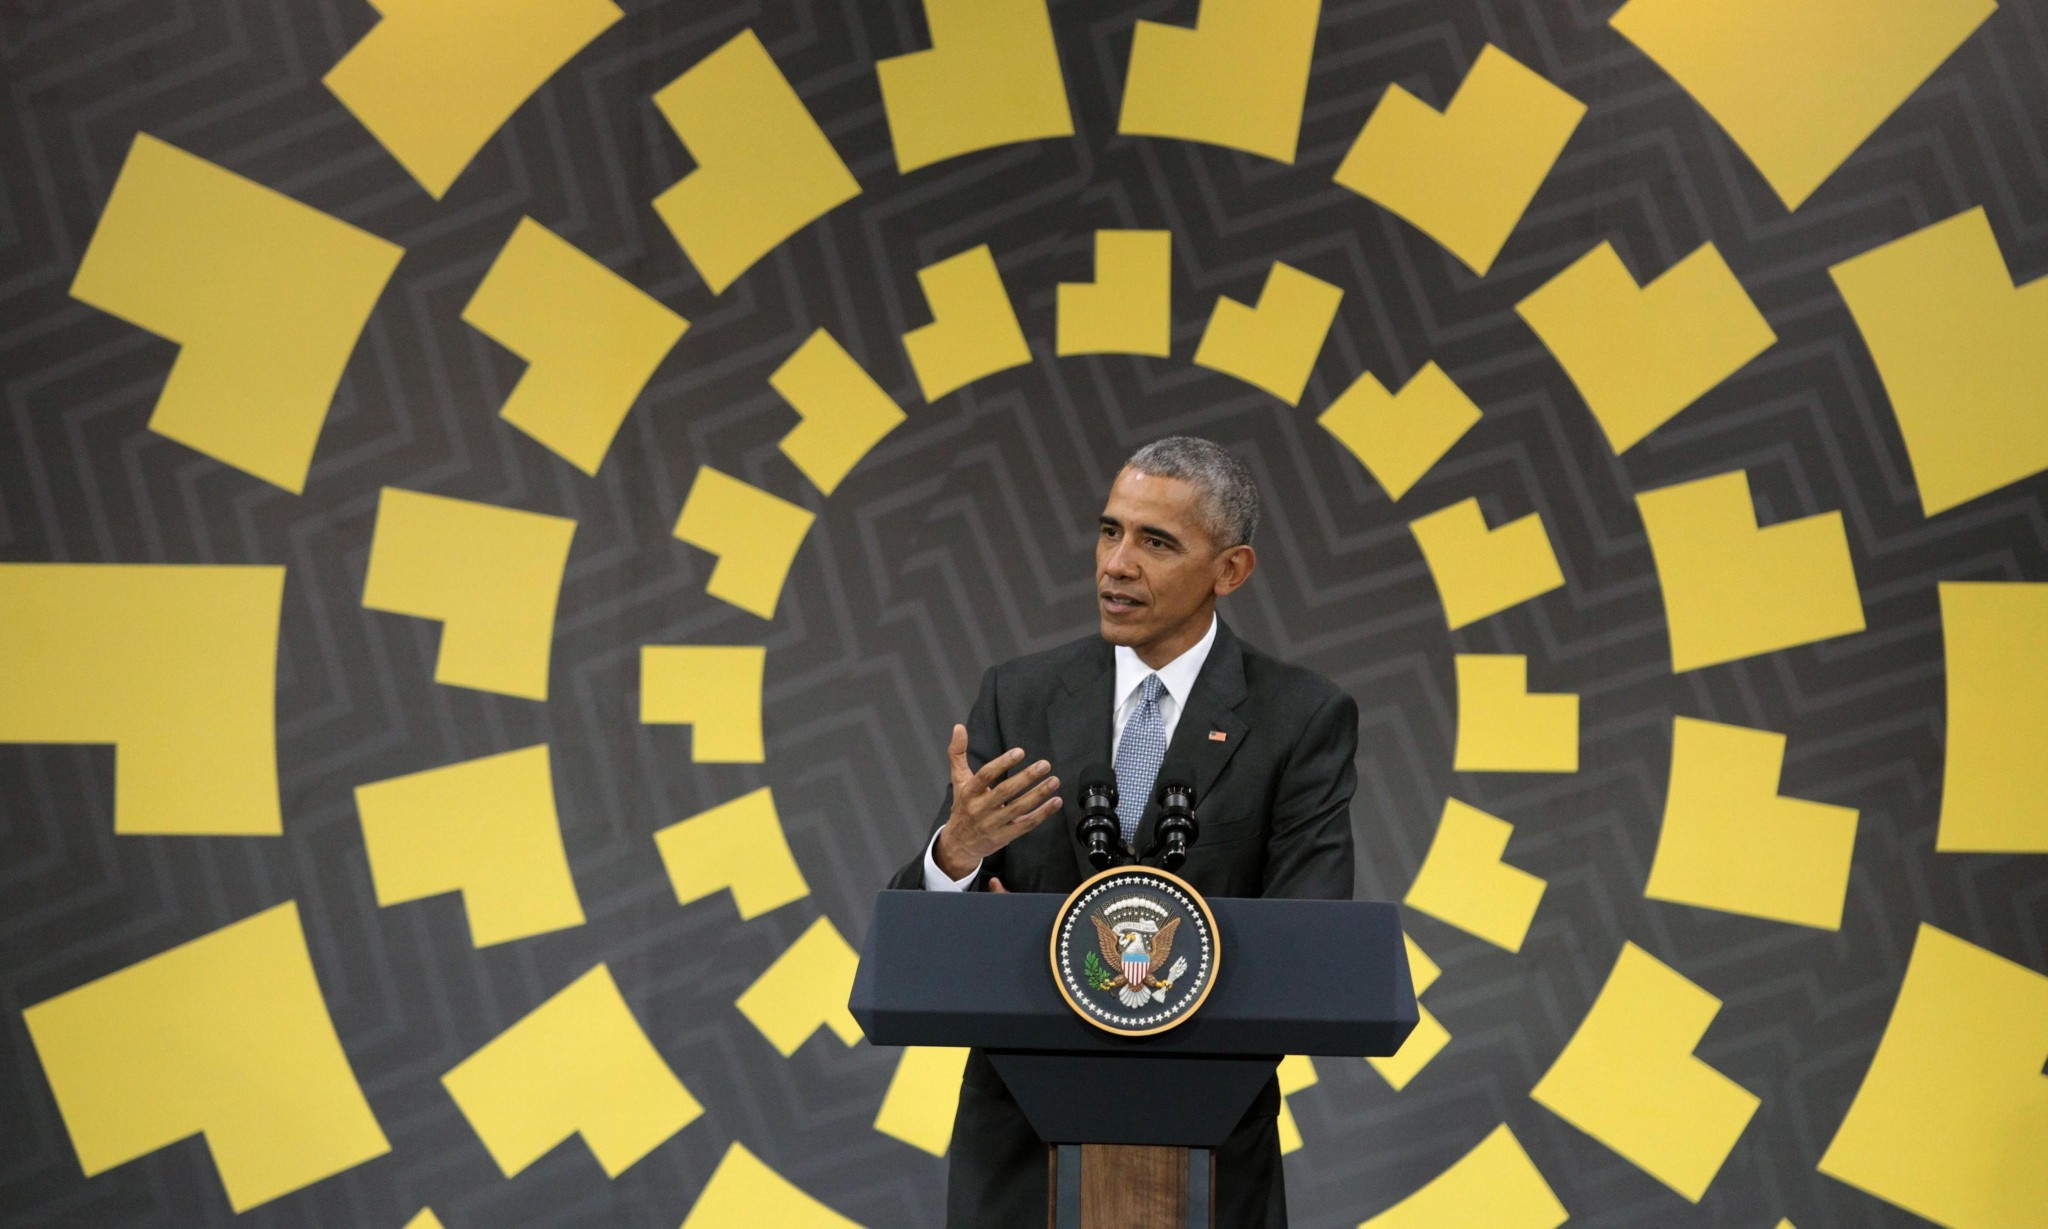 Barack Obama says reality will force Donald Trump to adjust his approach